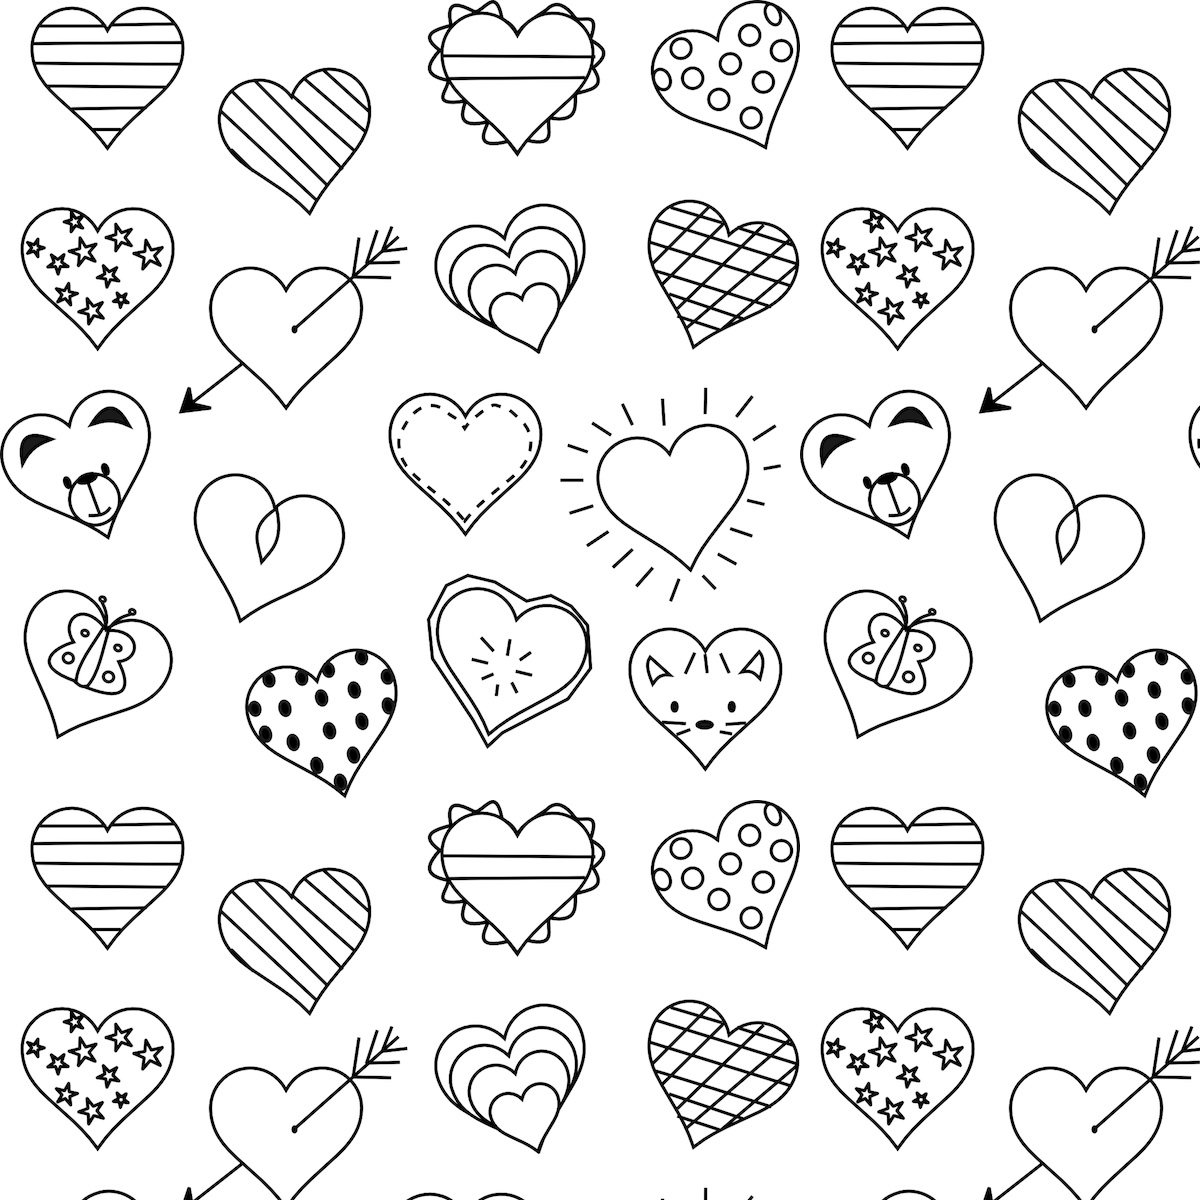 little heart coloring pages heart shaped border little hearts coloring book colouring heart coloring little pages